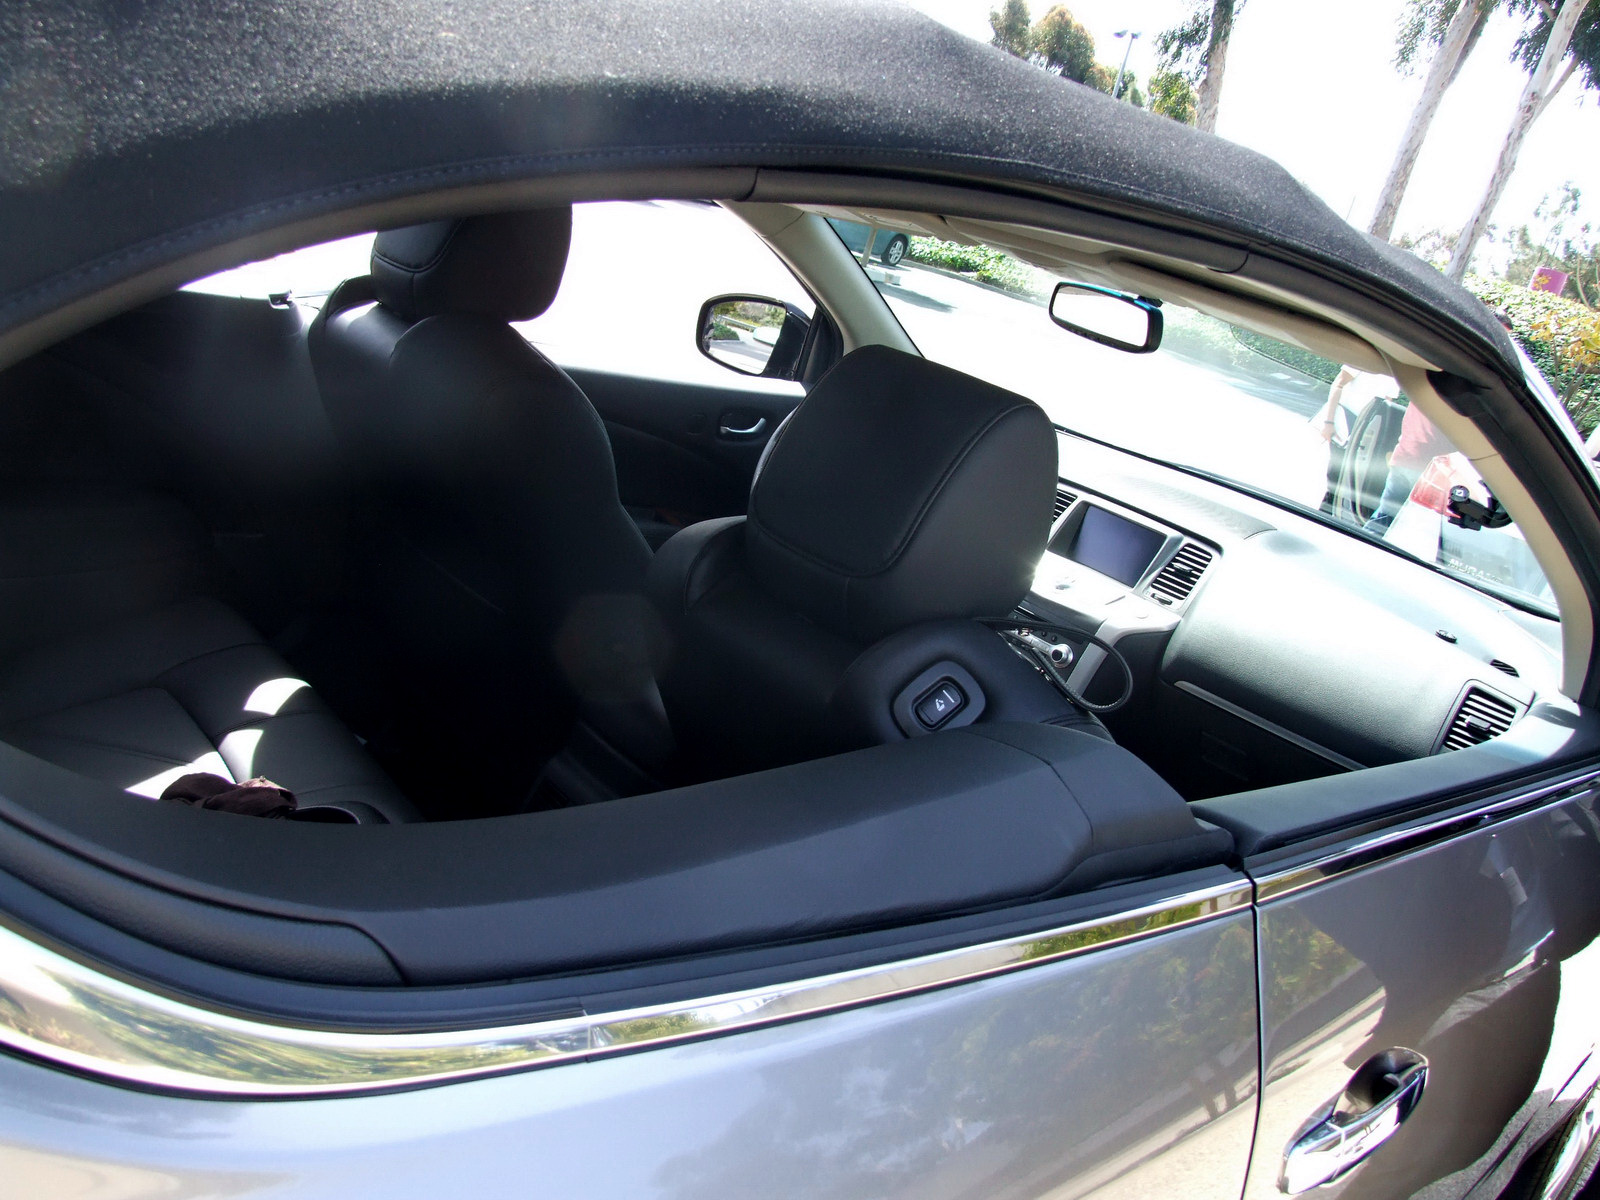 2010 - [Nissan] Murano CrossCabriolet - Page 4 2011-Nissan-Murano-CC-TD-654